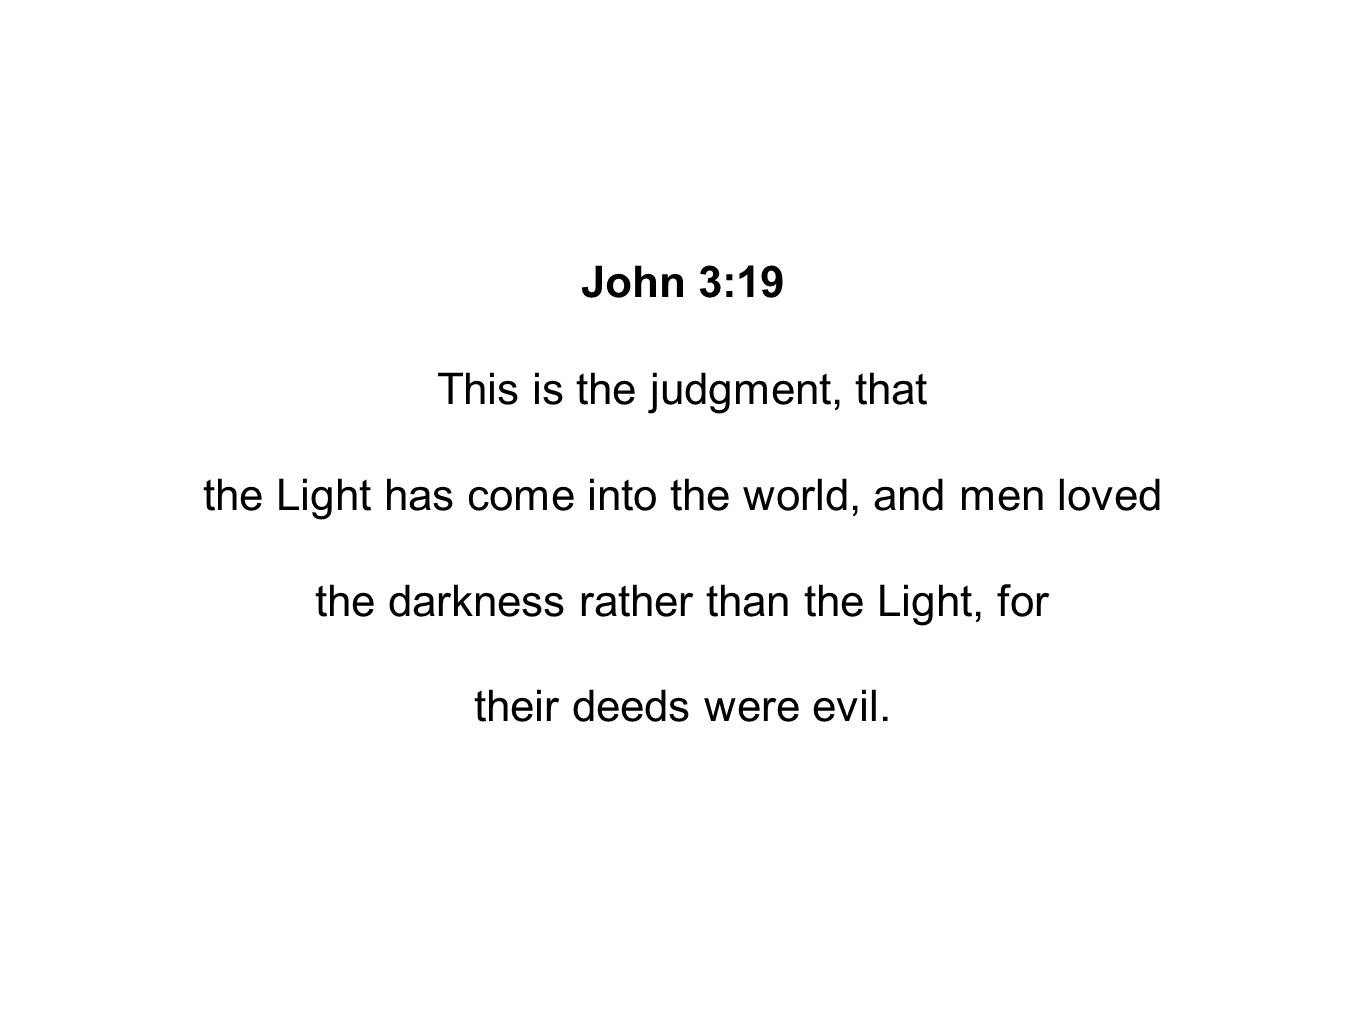 John 3:19 This is the judgment, that the Light has come into the world, and men loved the darkness rather than the Light, for their deeds were evil.